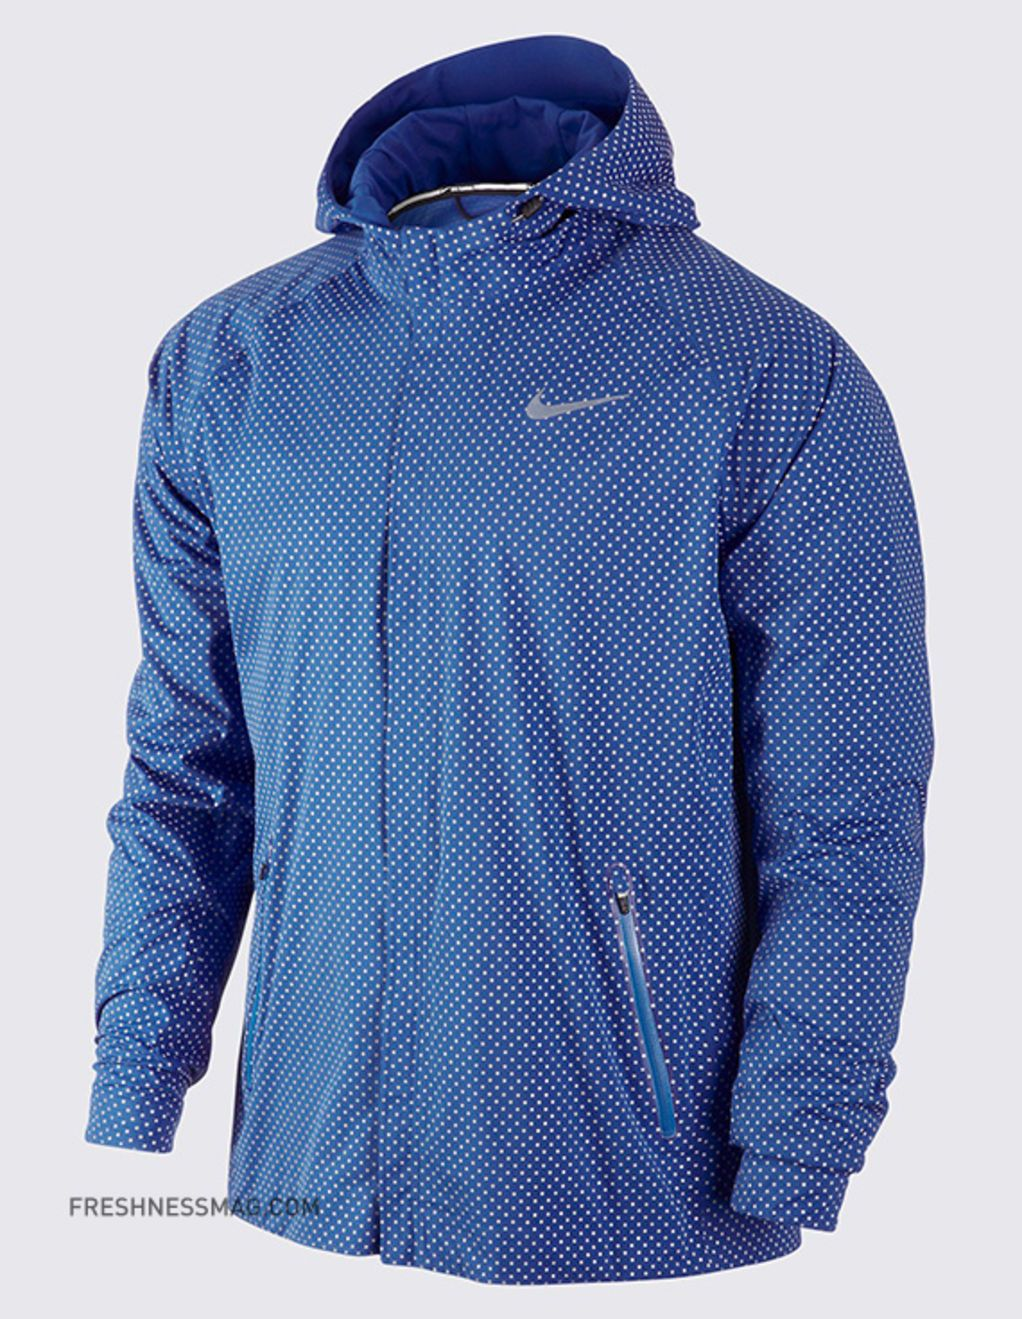 100% authentic 17979 9d04e Nike Shield Flash Max Reflective Running Jacket   Freshness Mag